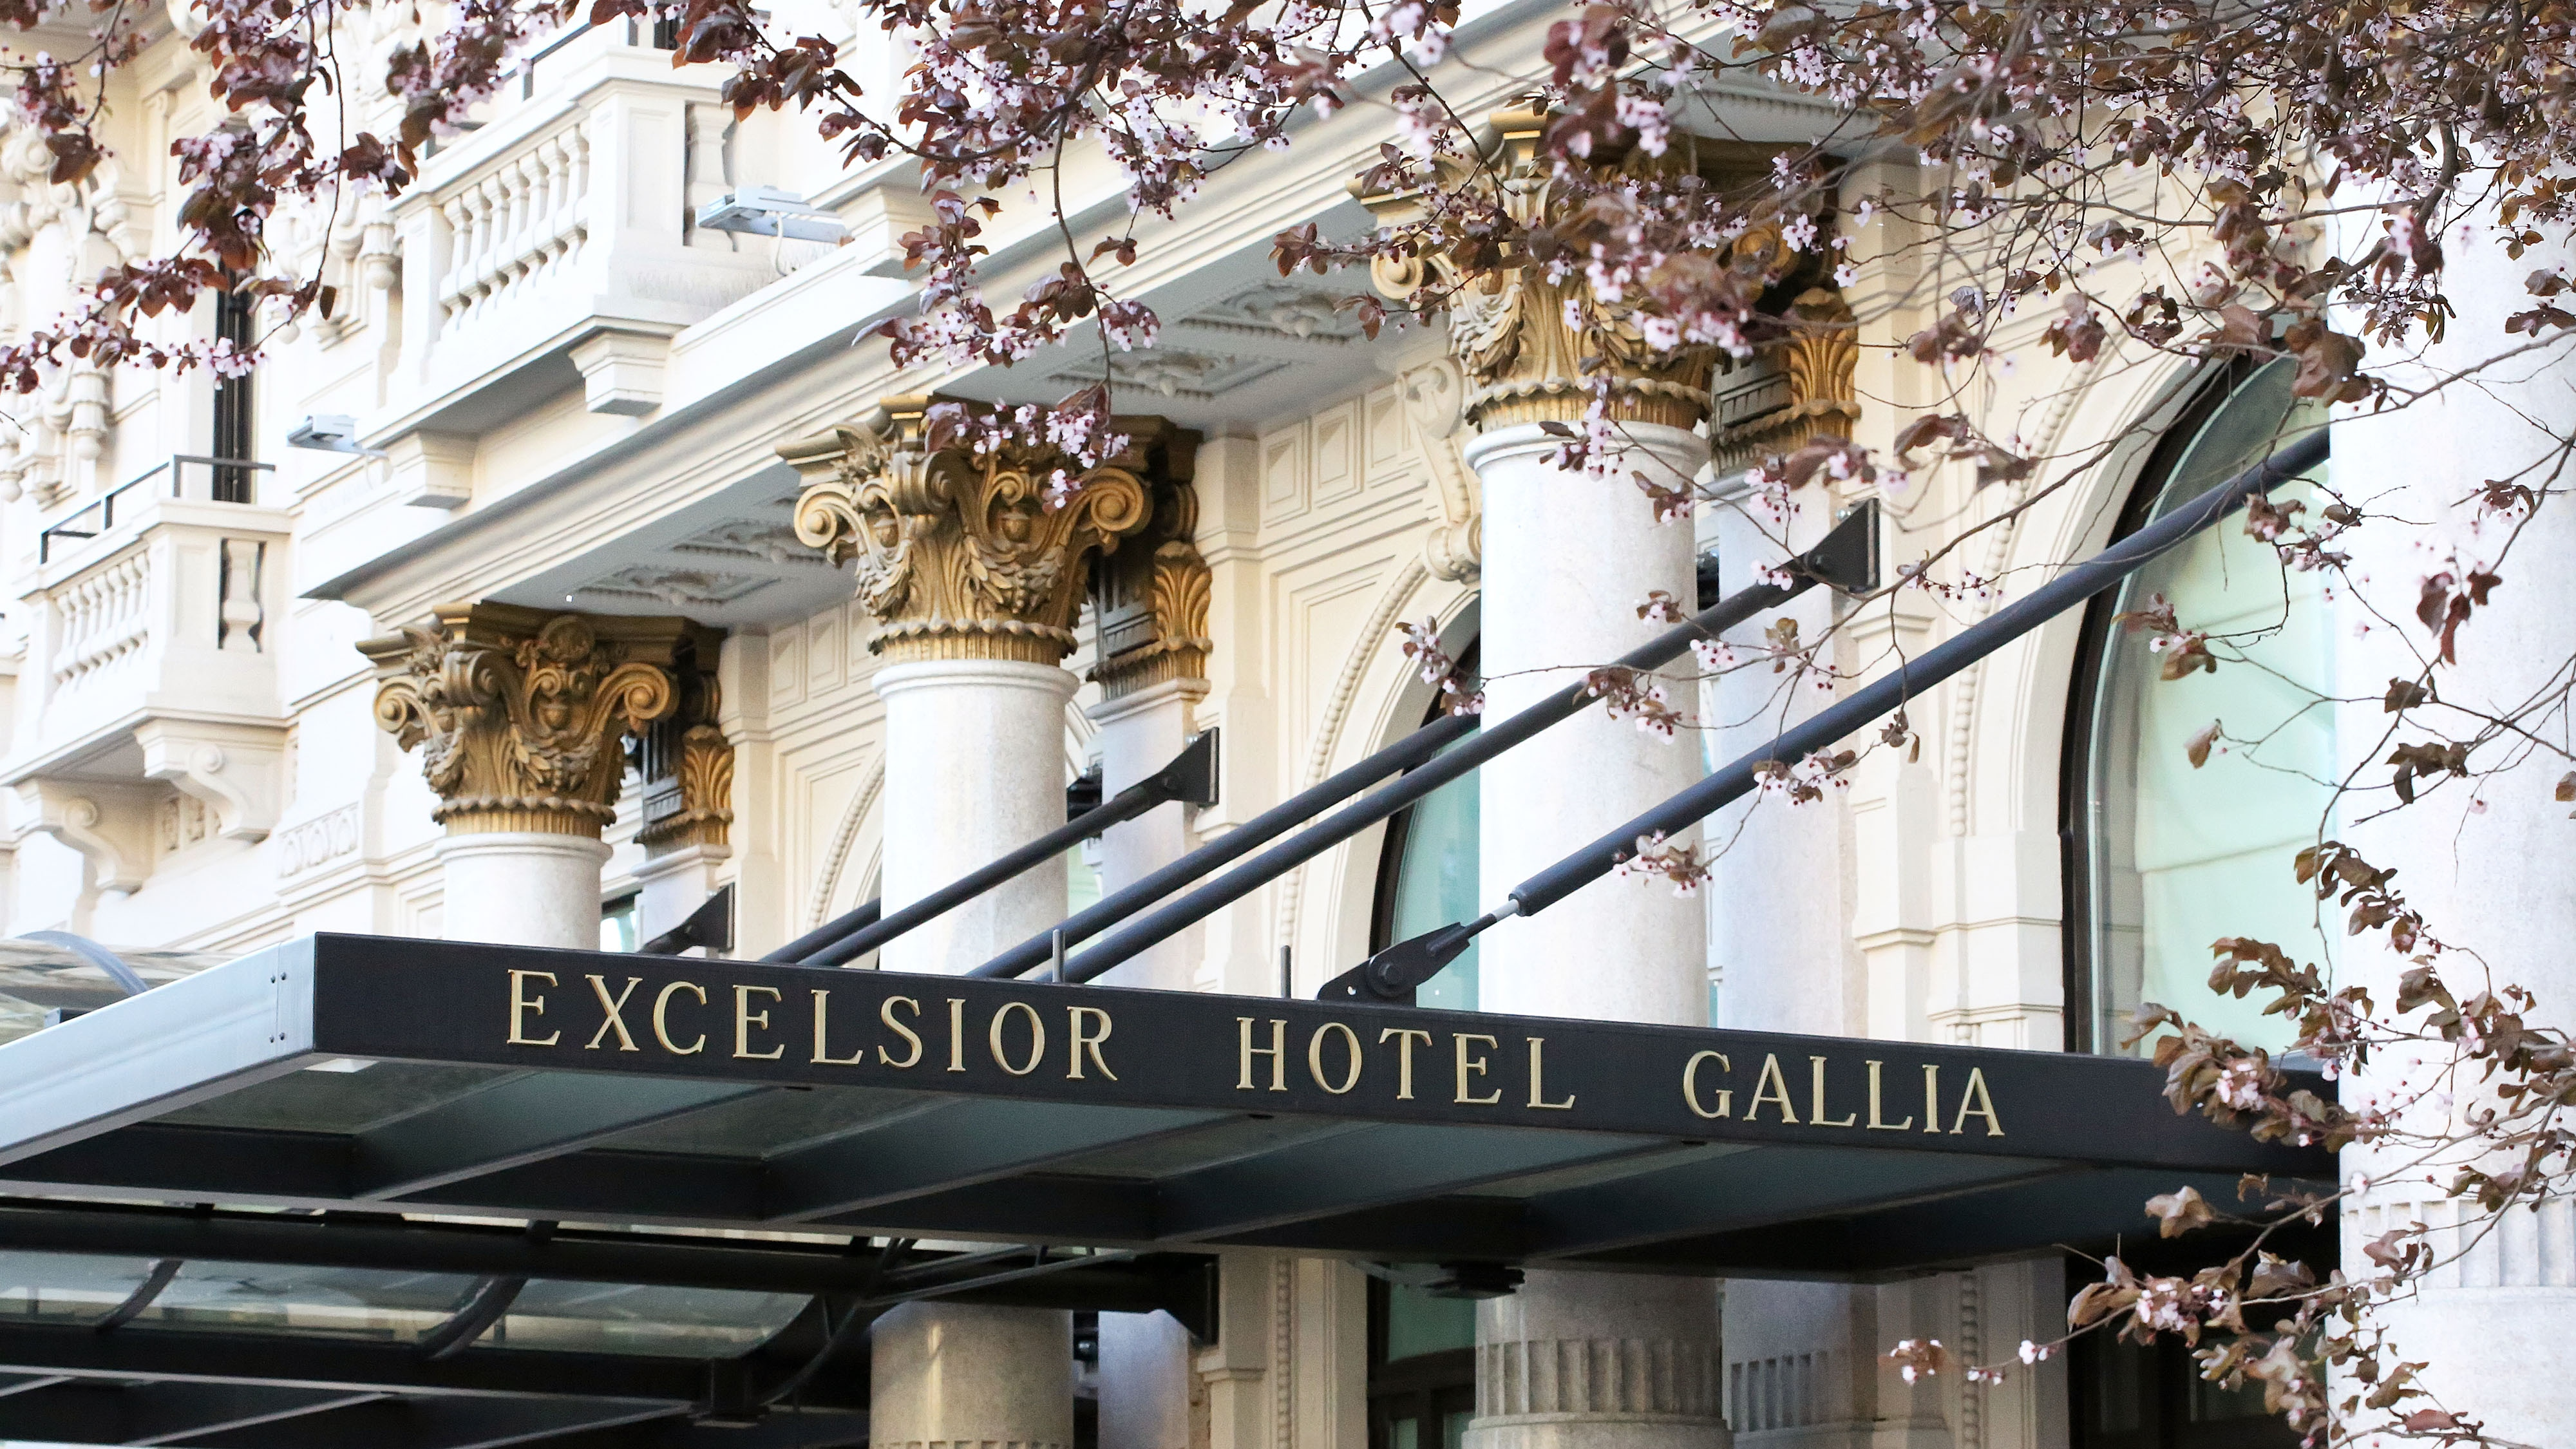 Luxury Hotels Resorts In Milan Excelsior Hotel Gallia A Luxury